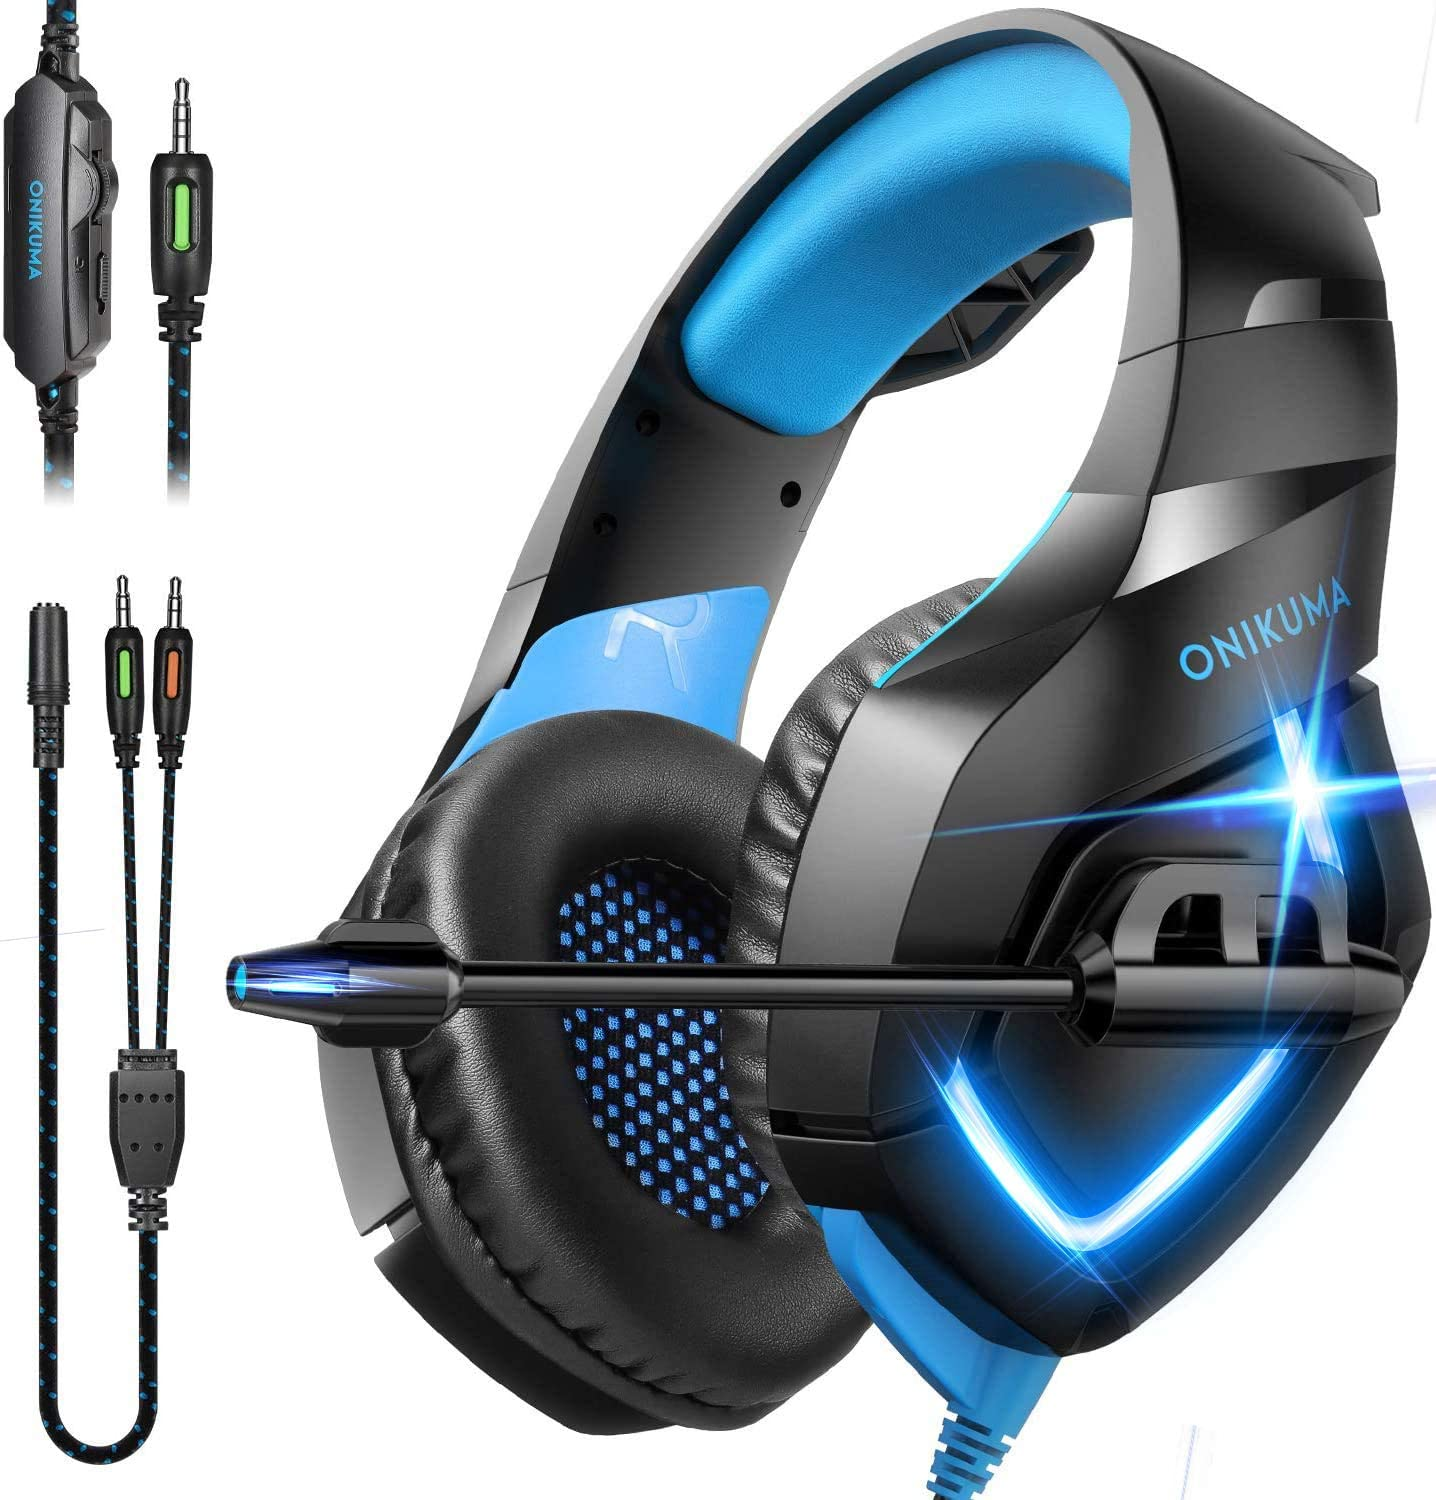 ONIKUMA Gaming Headphones PS4 Headset Gaming Headset Xbox one Headset Gaming Headphone with mic for PS4,GameCube,Mac,Xbox One(Adapter Not Included)